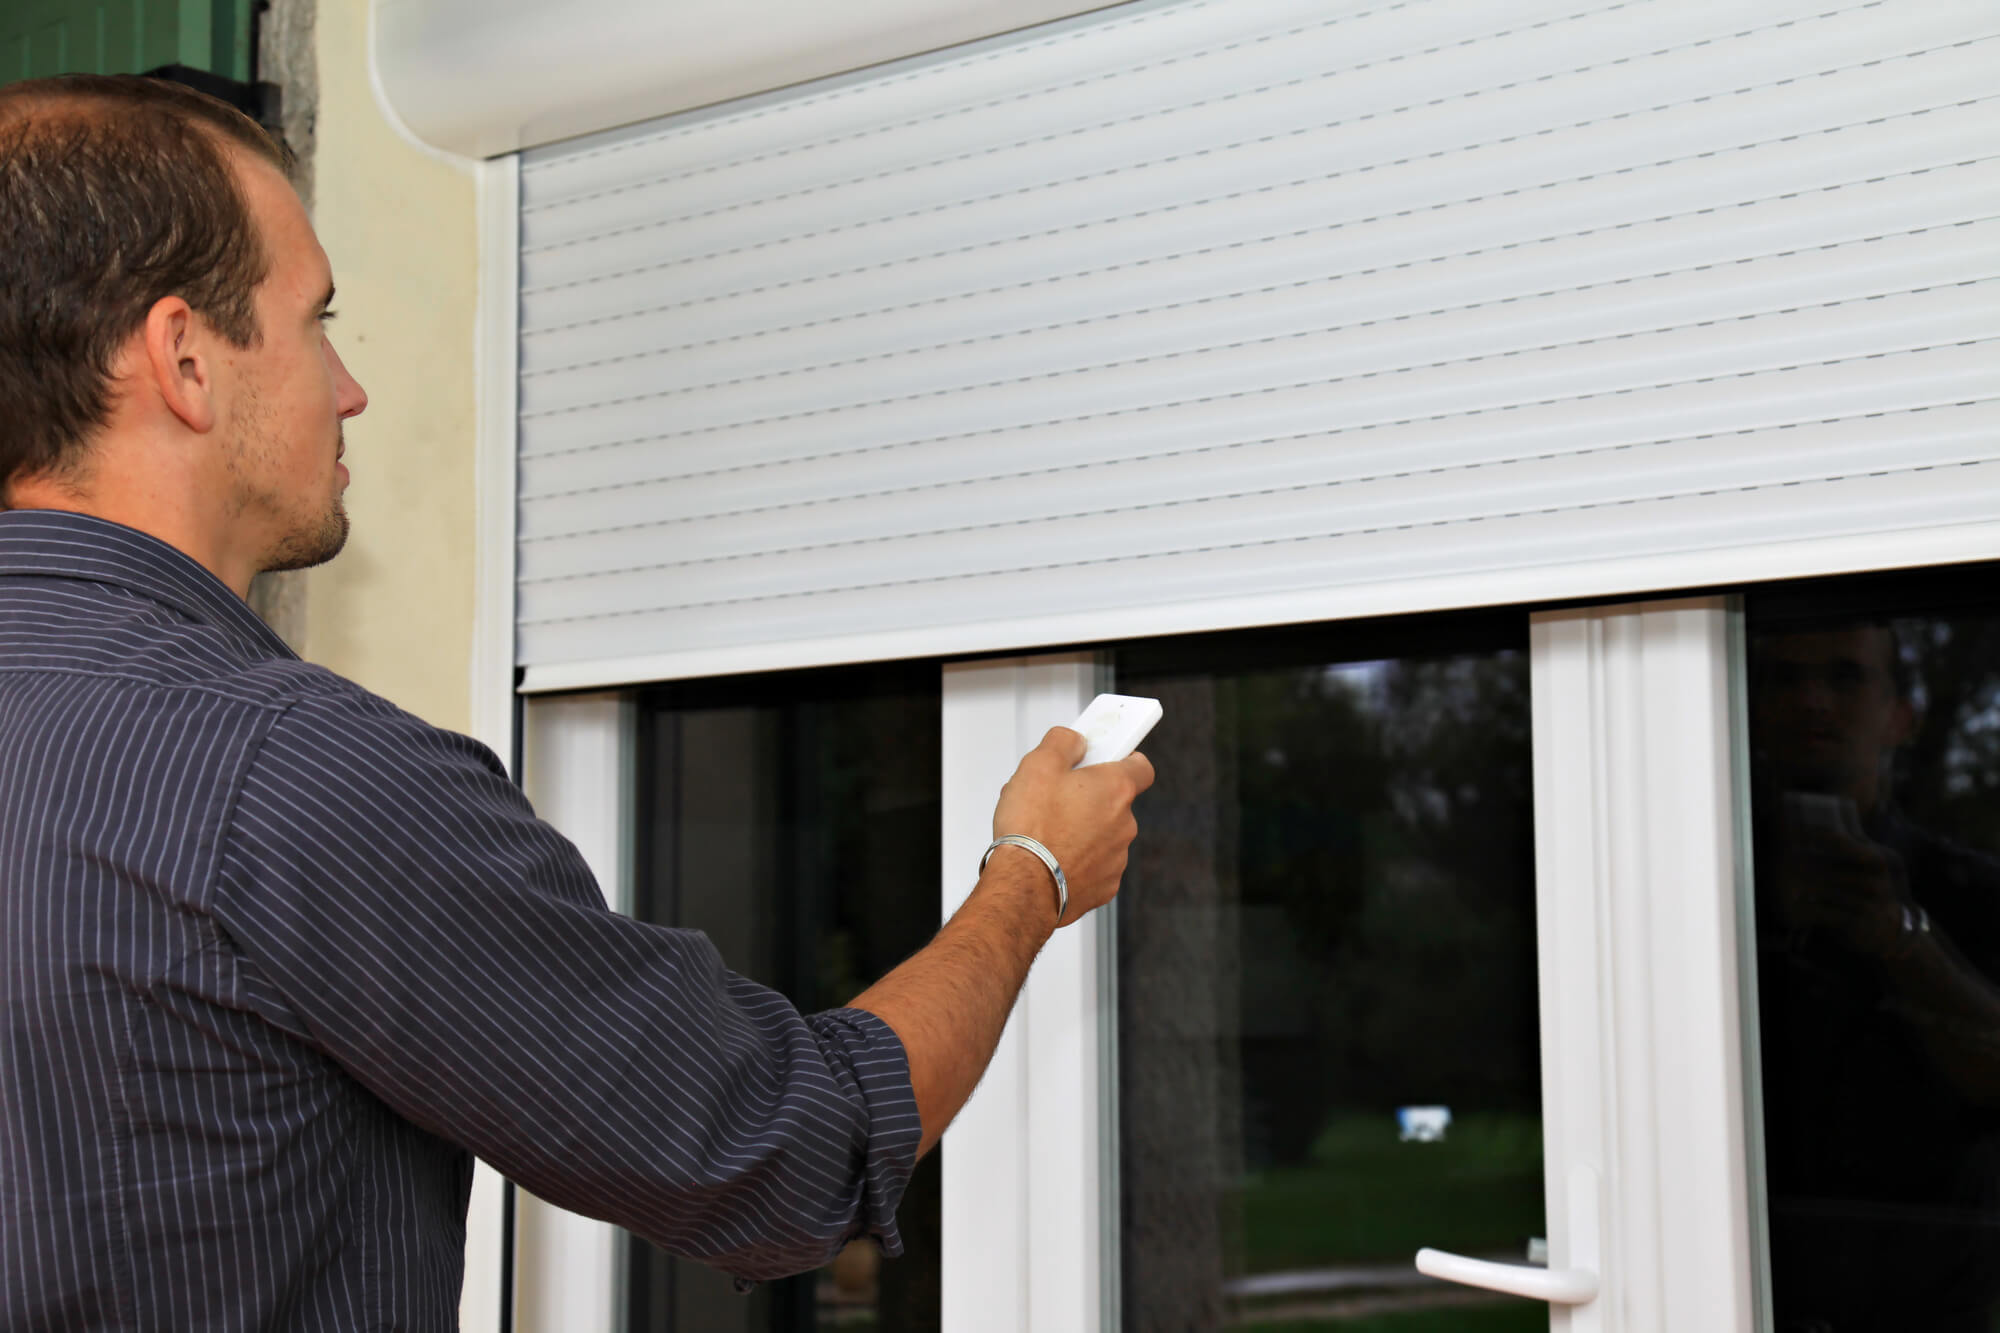 5 Benefits of Investing in Motorized Shades for Your Home